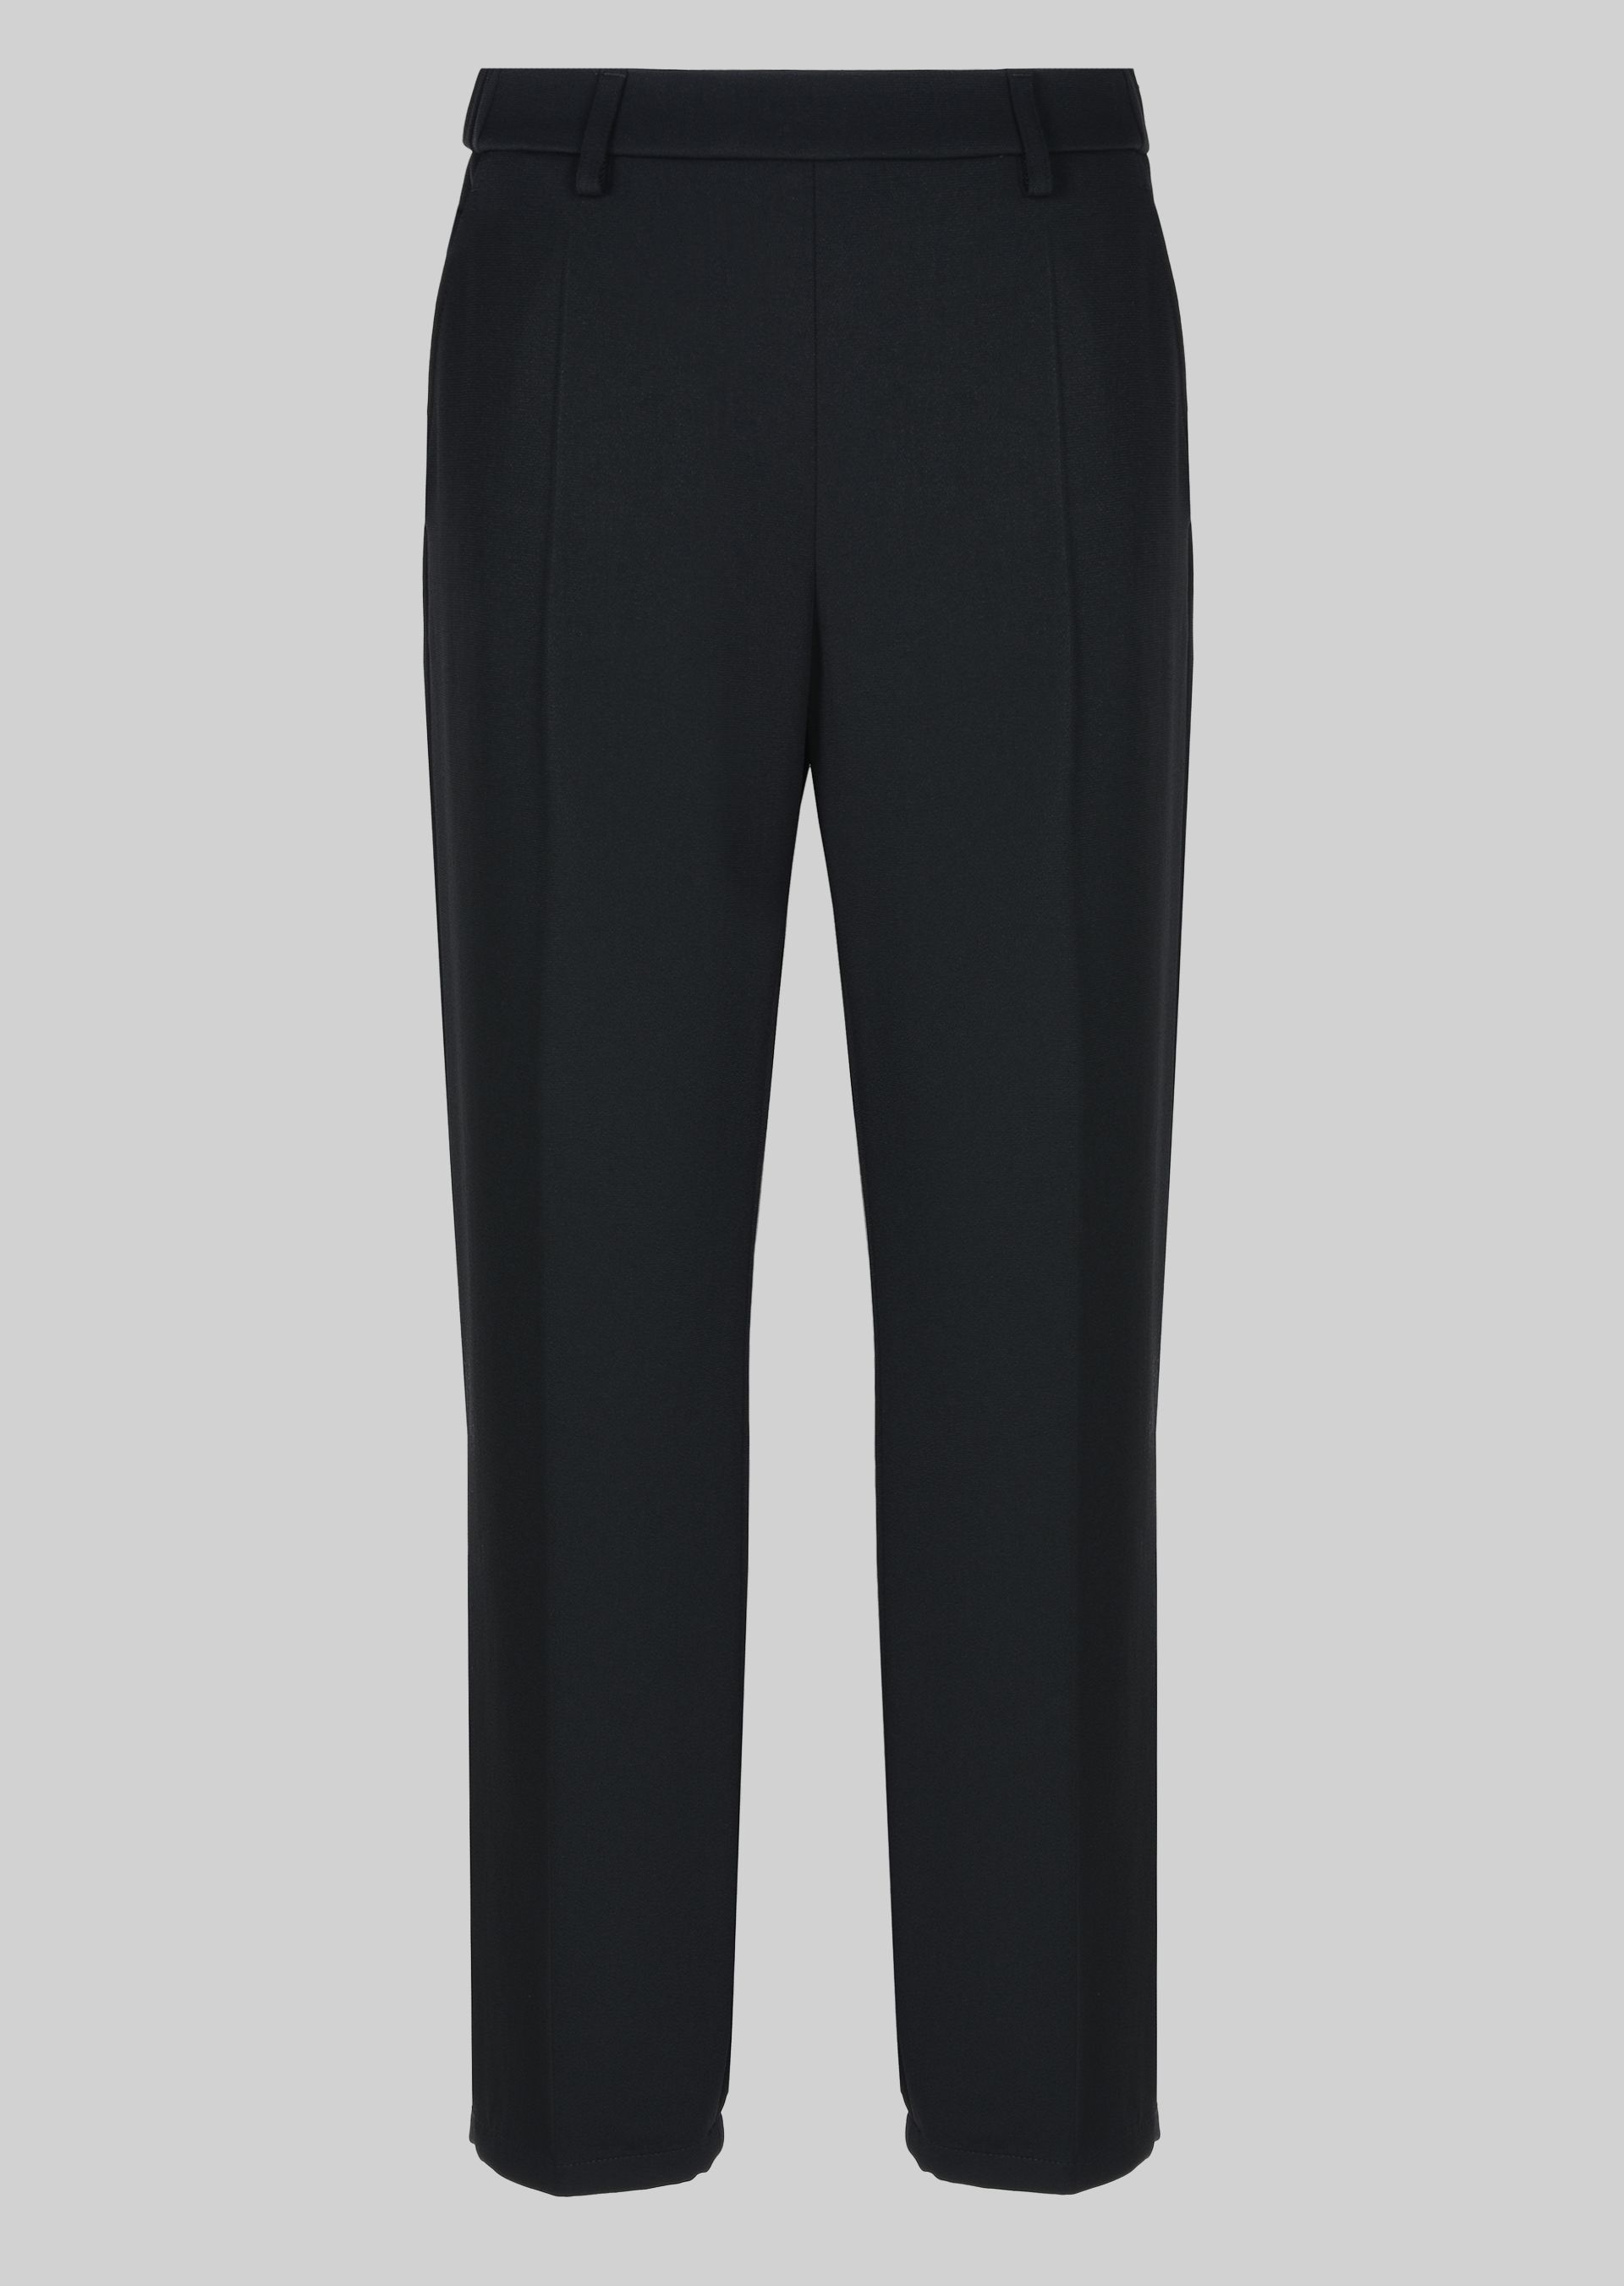 GIORGIO ARMANI CLASSIC TROUSERS IN TECHNICAL FABRIC Pants D r